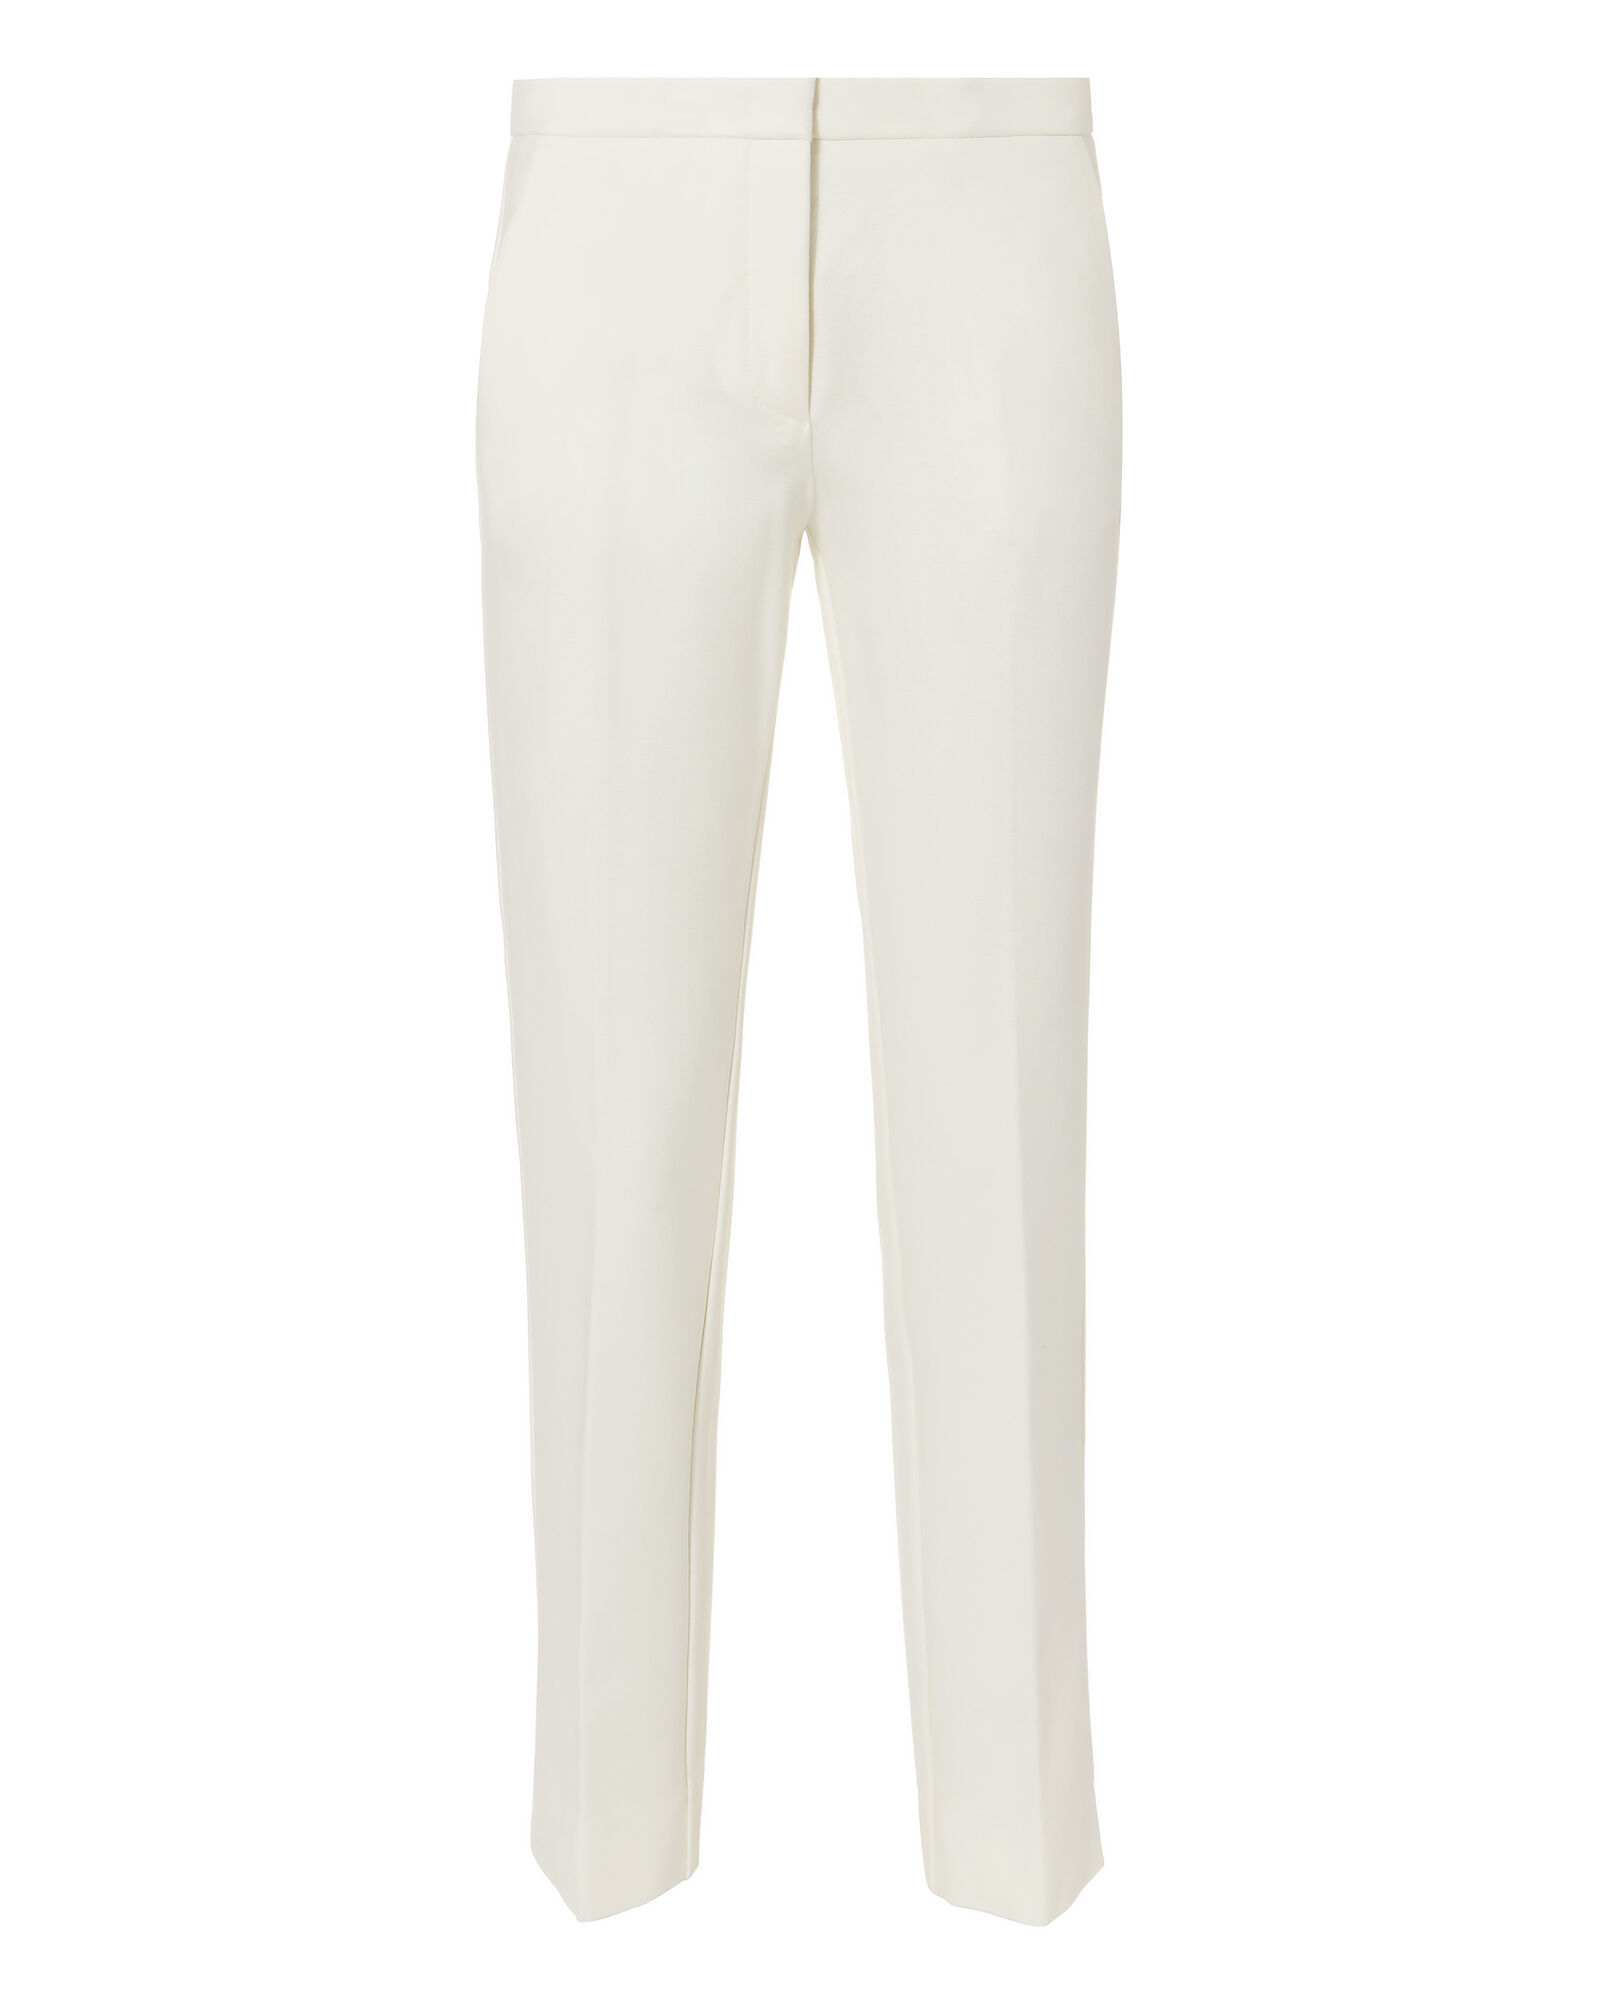 Drake Slim Trousers, IVORY, hi-res